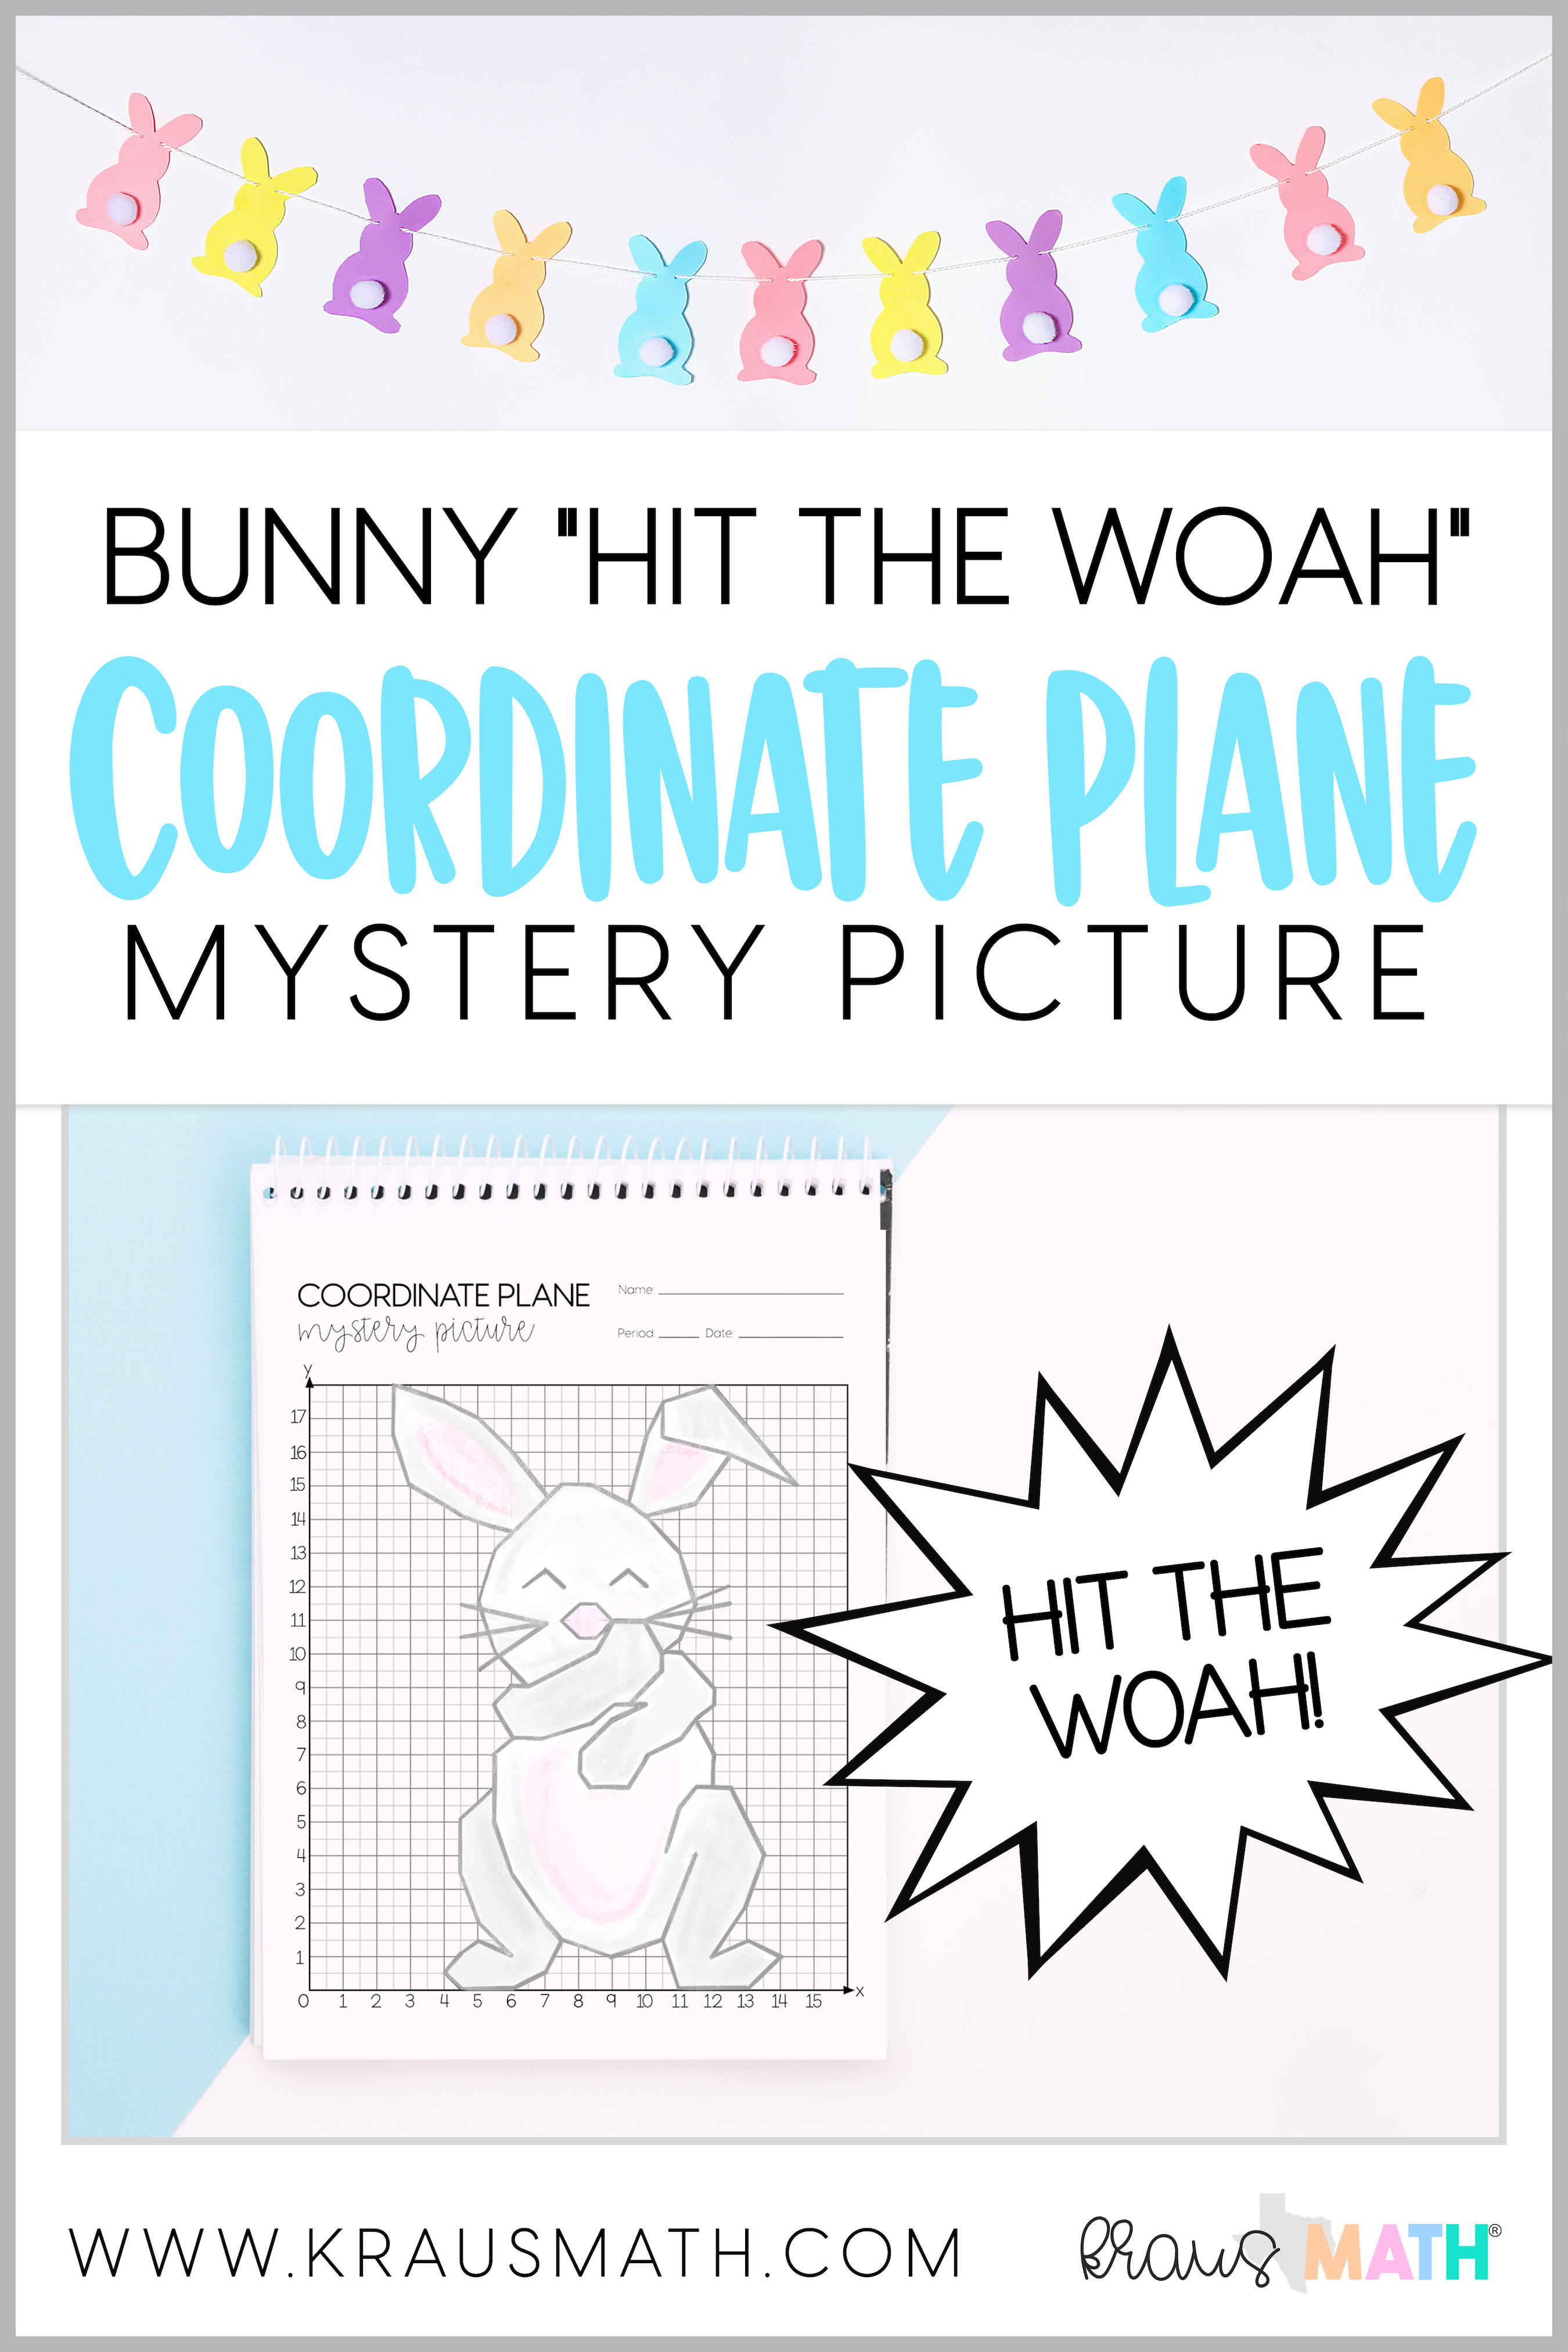 Bunny Hit The Woah Dance Coordinate Plane Mystery